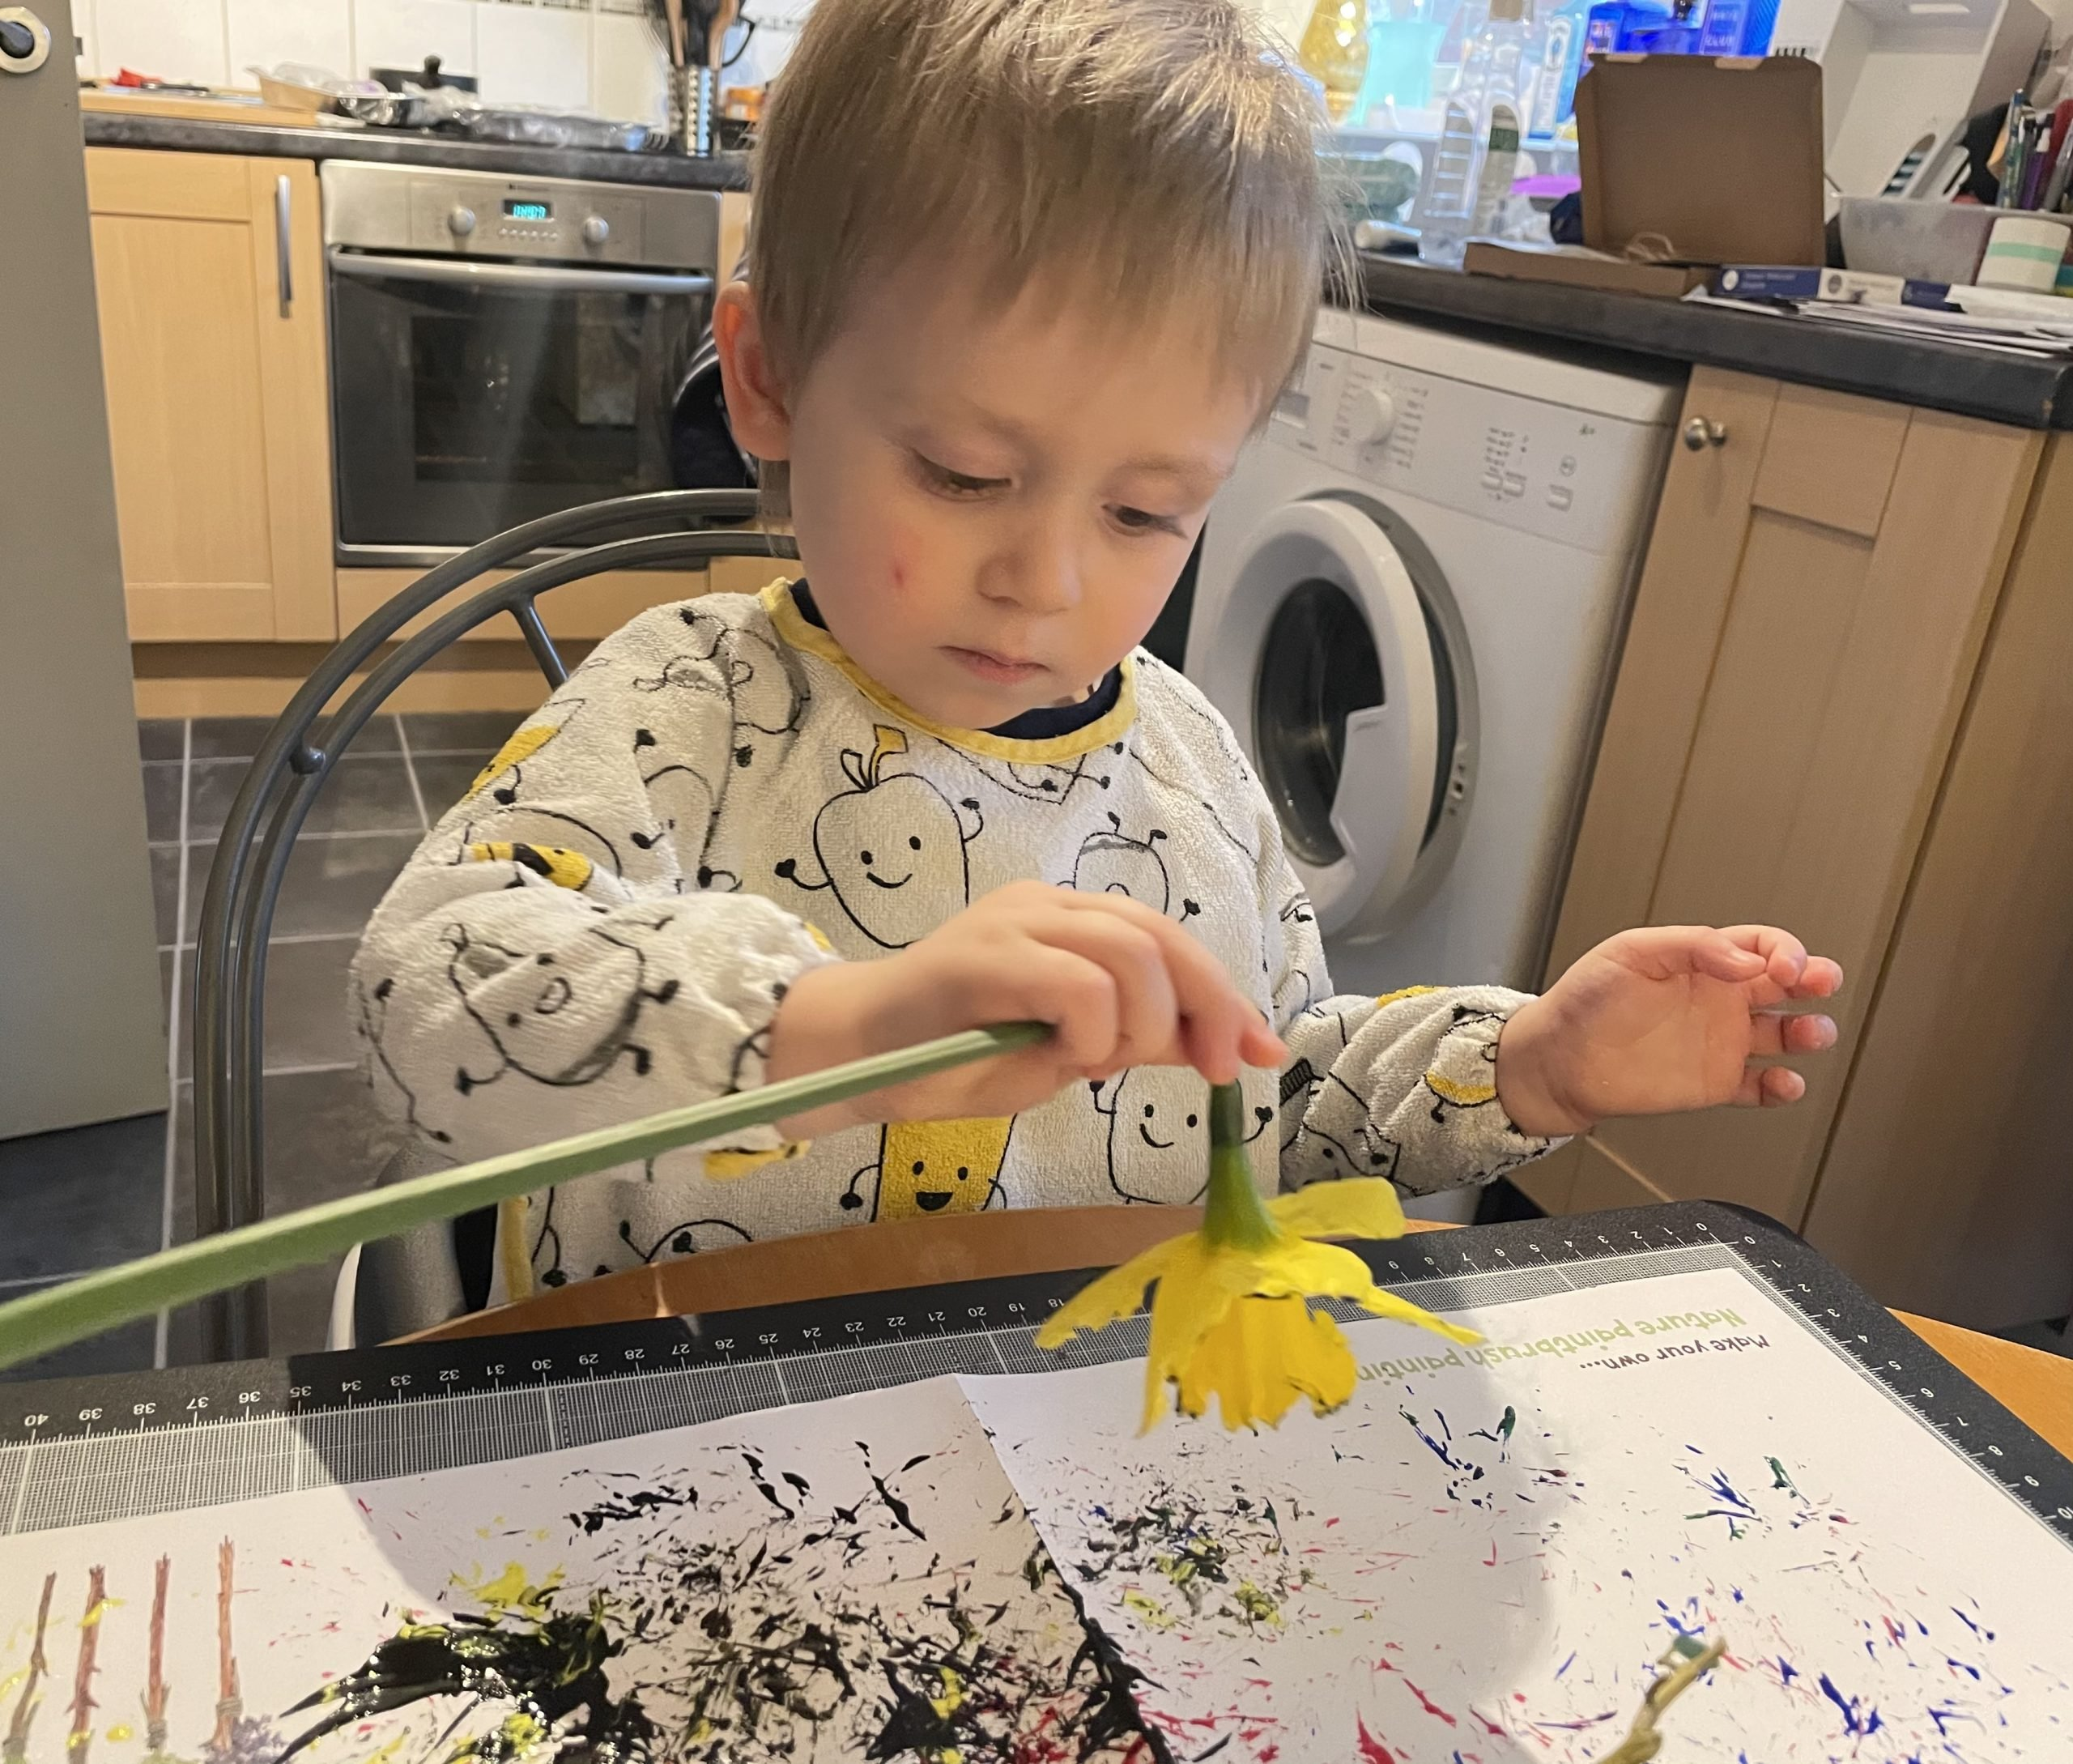 On a wooden table is a large sheet of white paper with paint splatters all over it. Little J is using the nature paintbrushes to paint. The nature paintbrush is made out of a daffodil